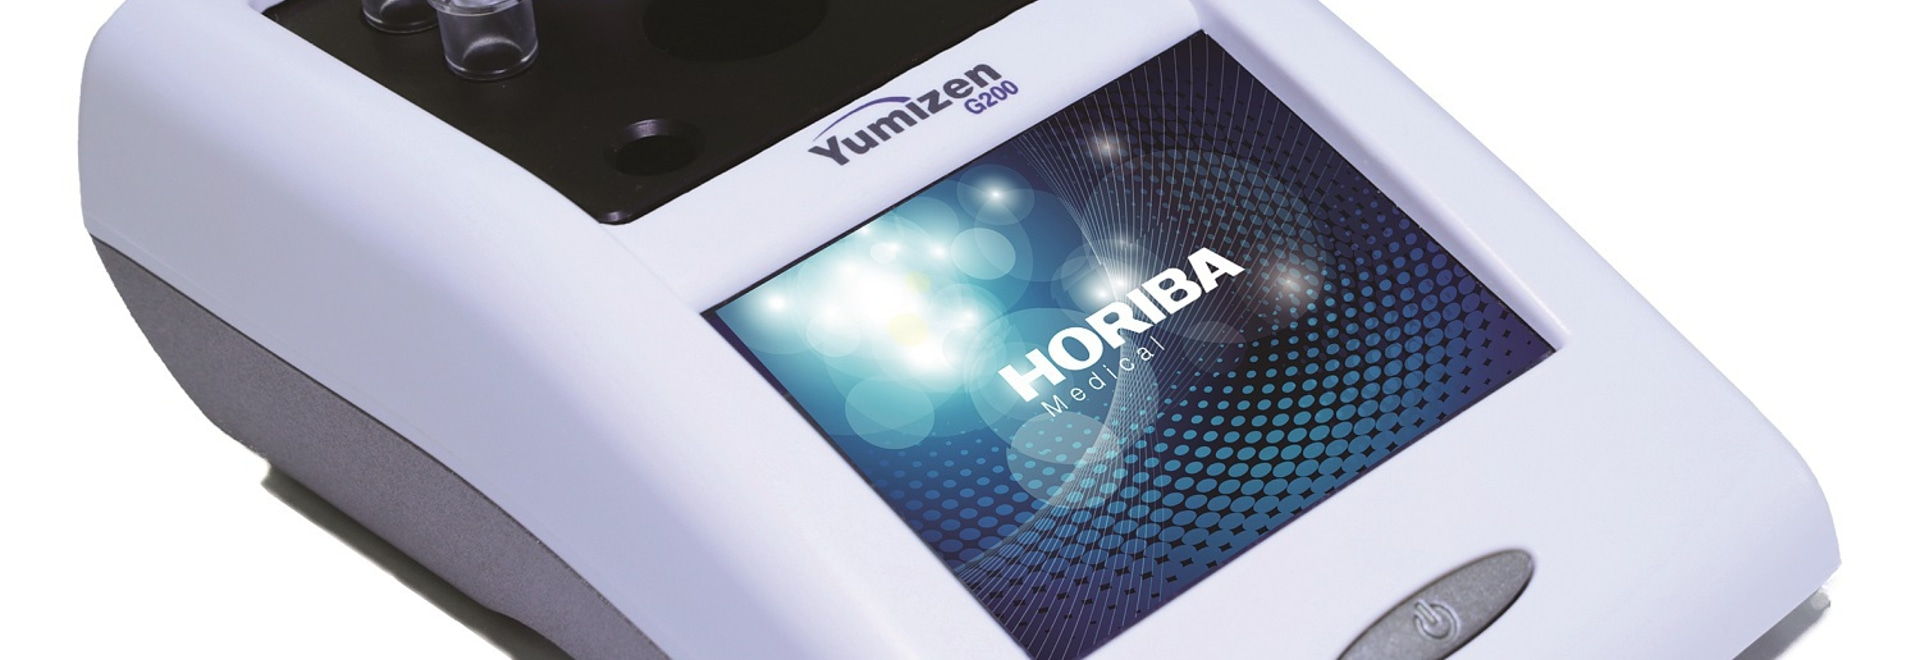 HORIBA Medical haemostasis instrument validated for use with UK NEQAS BC samples